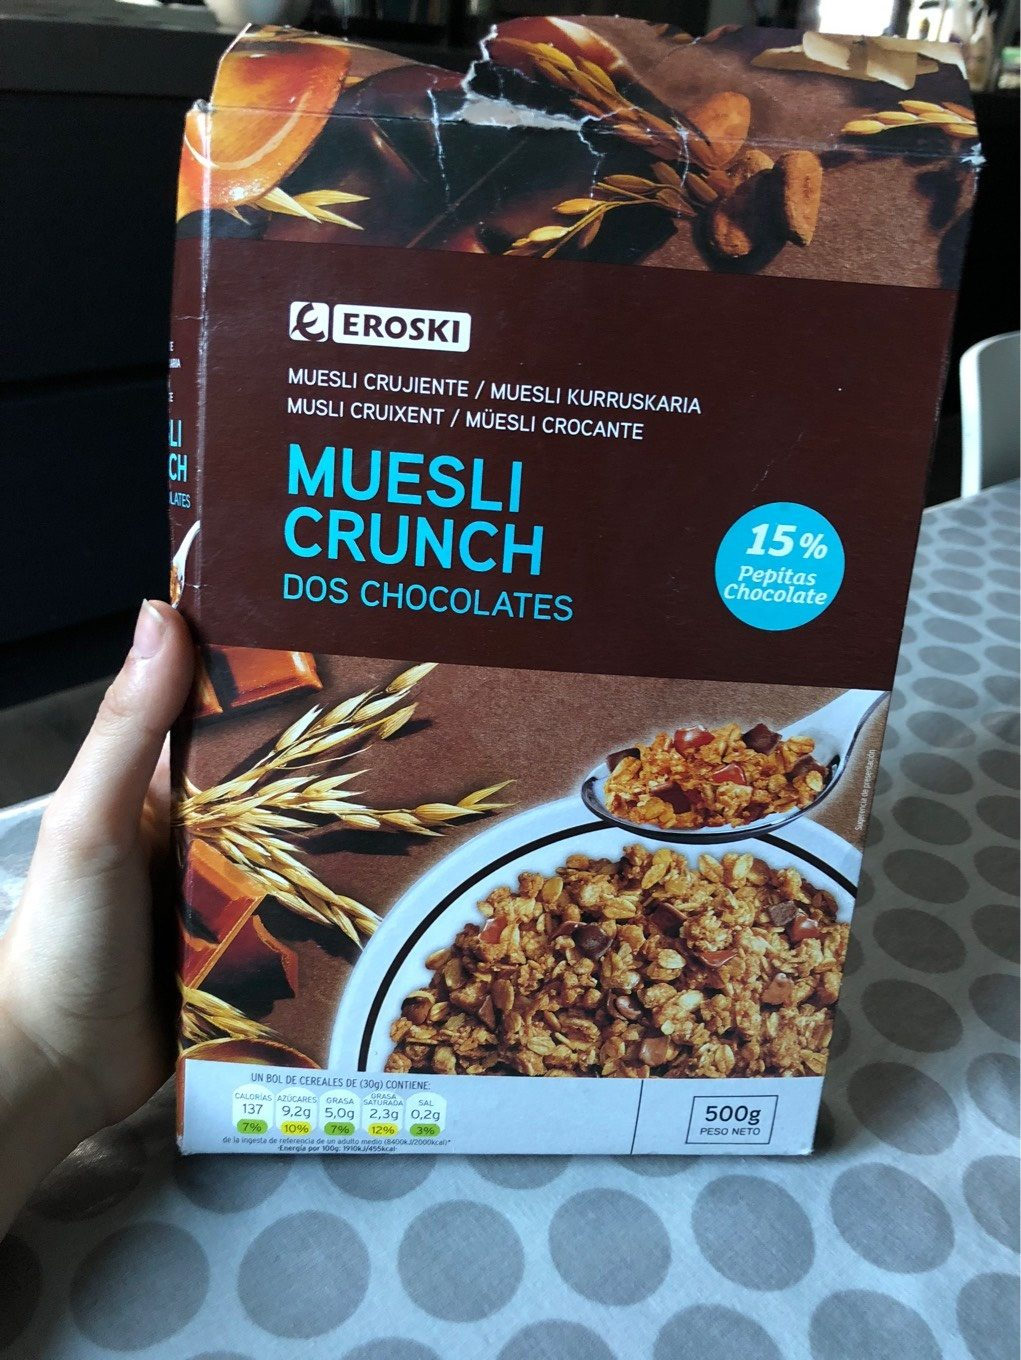 Muesli crunch dos chocolates - Product